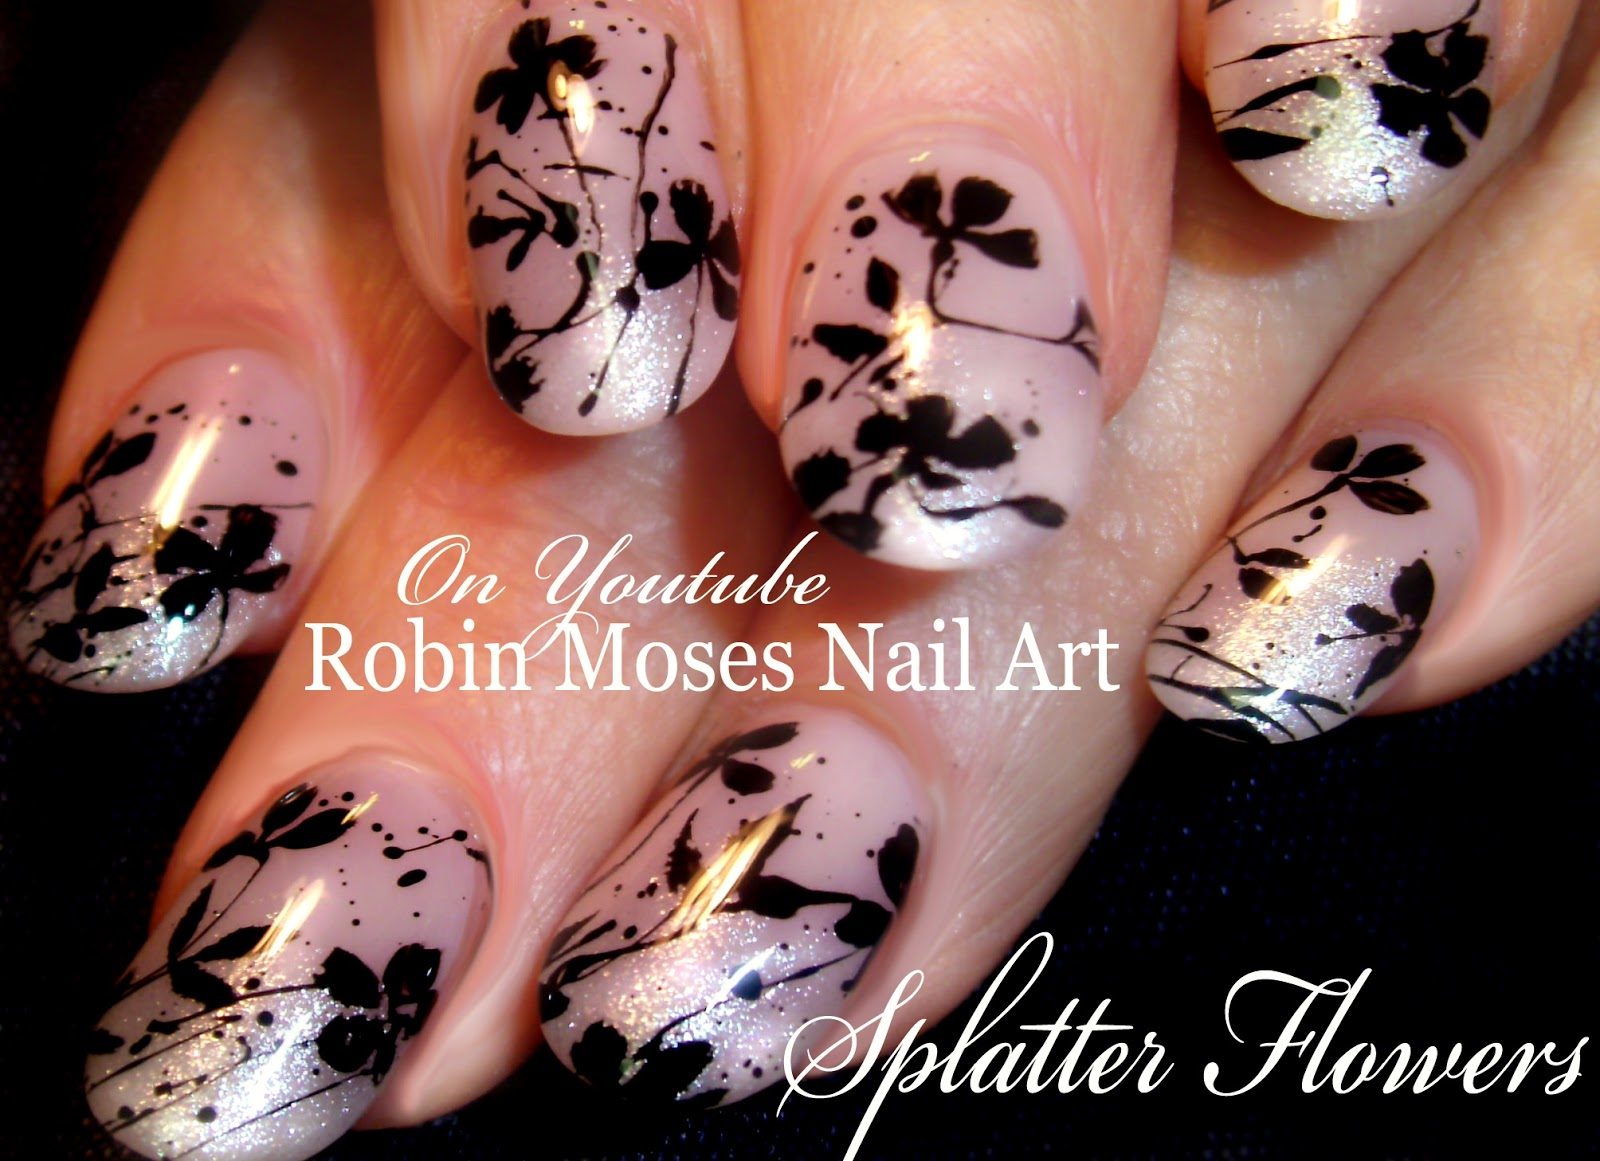 Nail Art by Robin Moses: Flower Splatter Paint with Flowers | Black ...